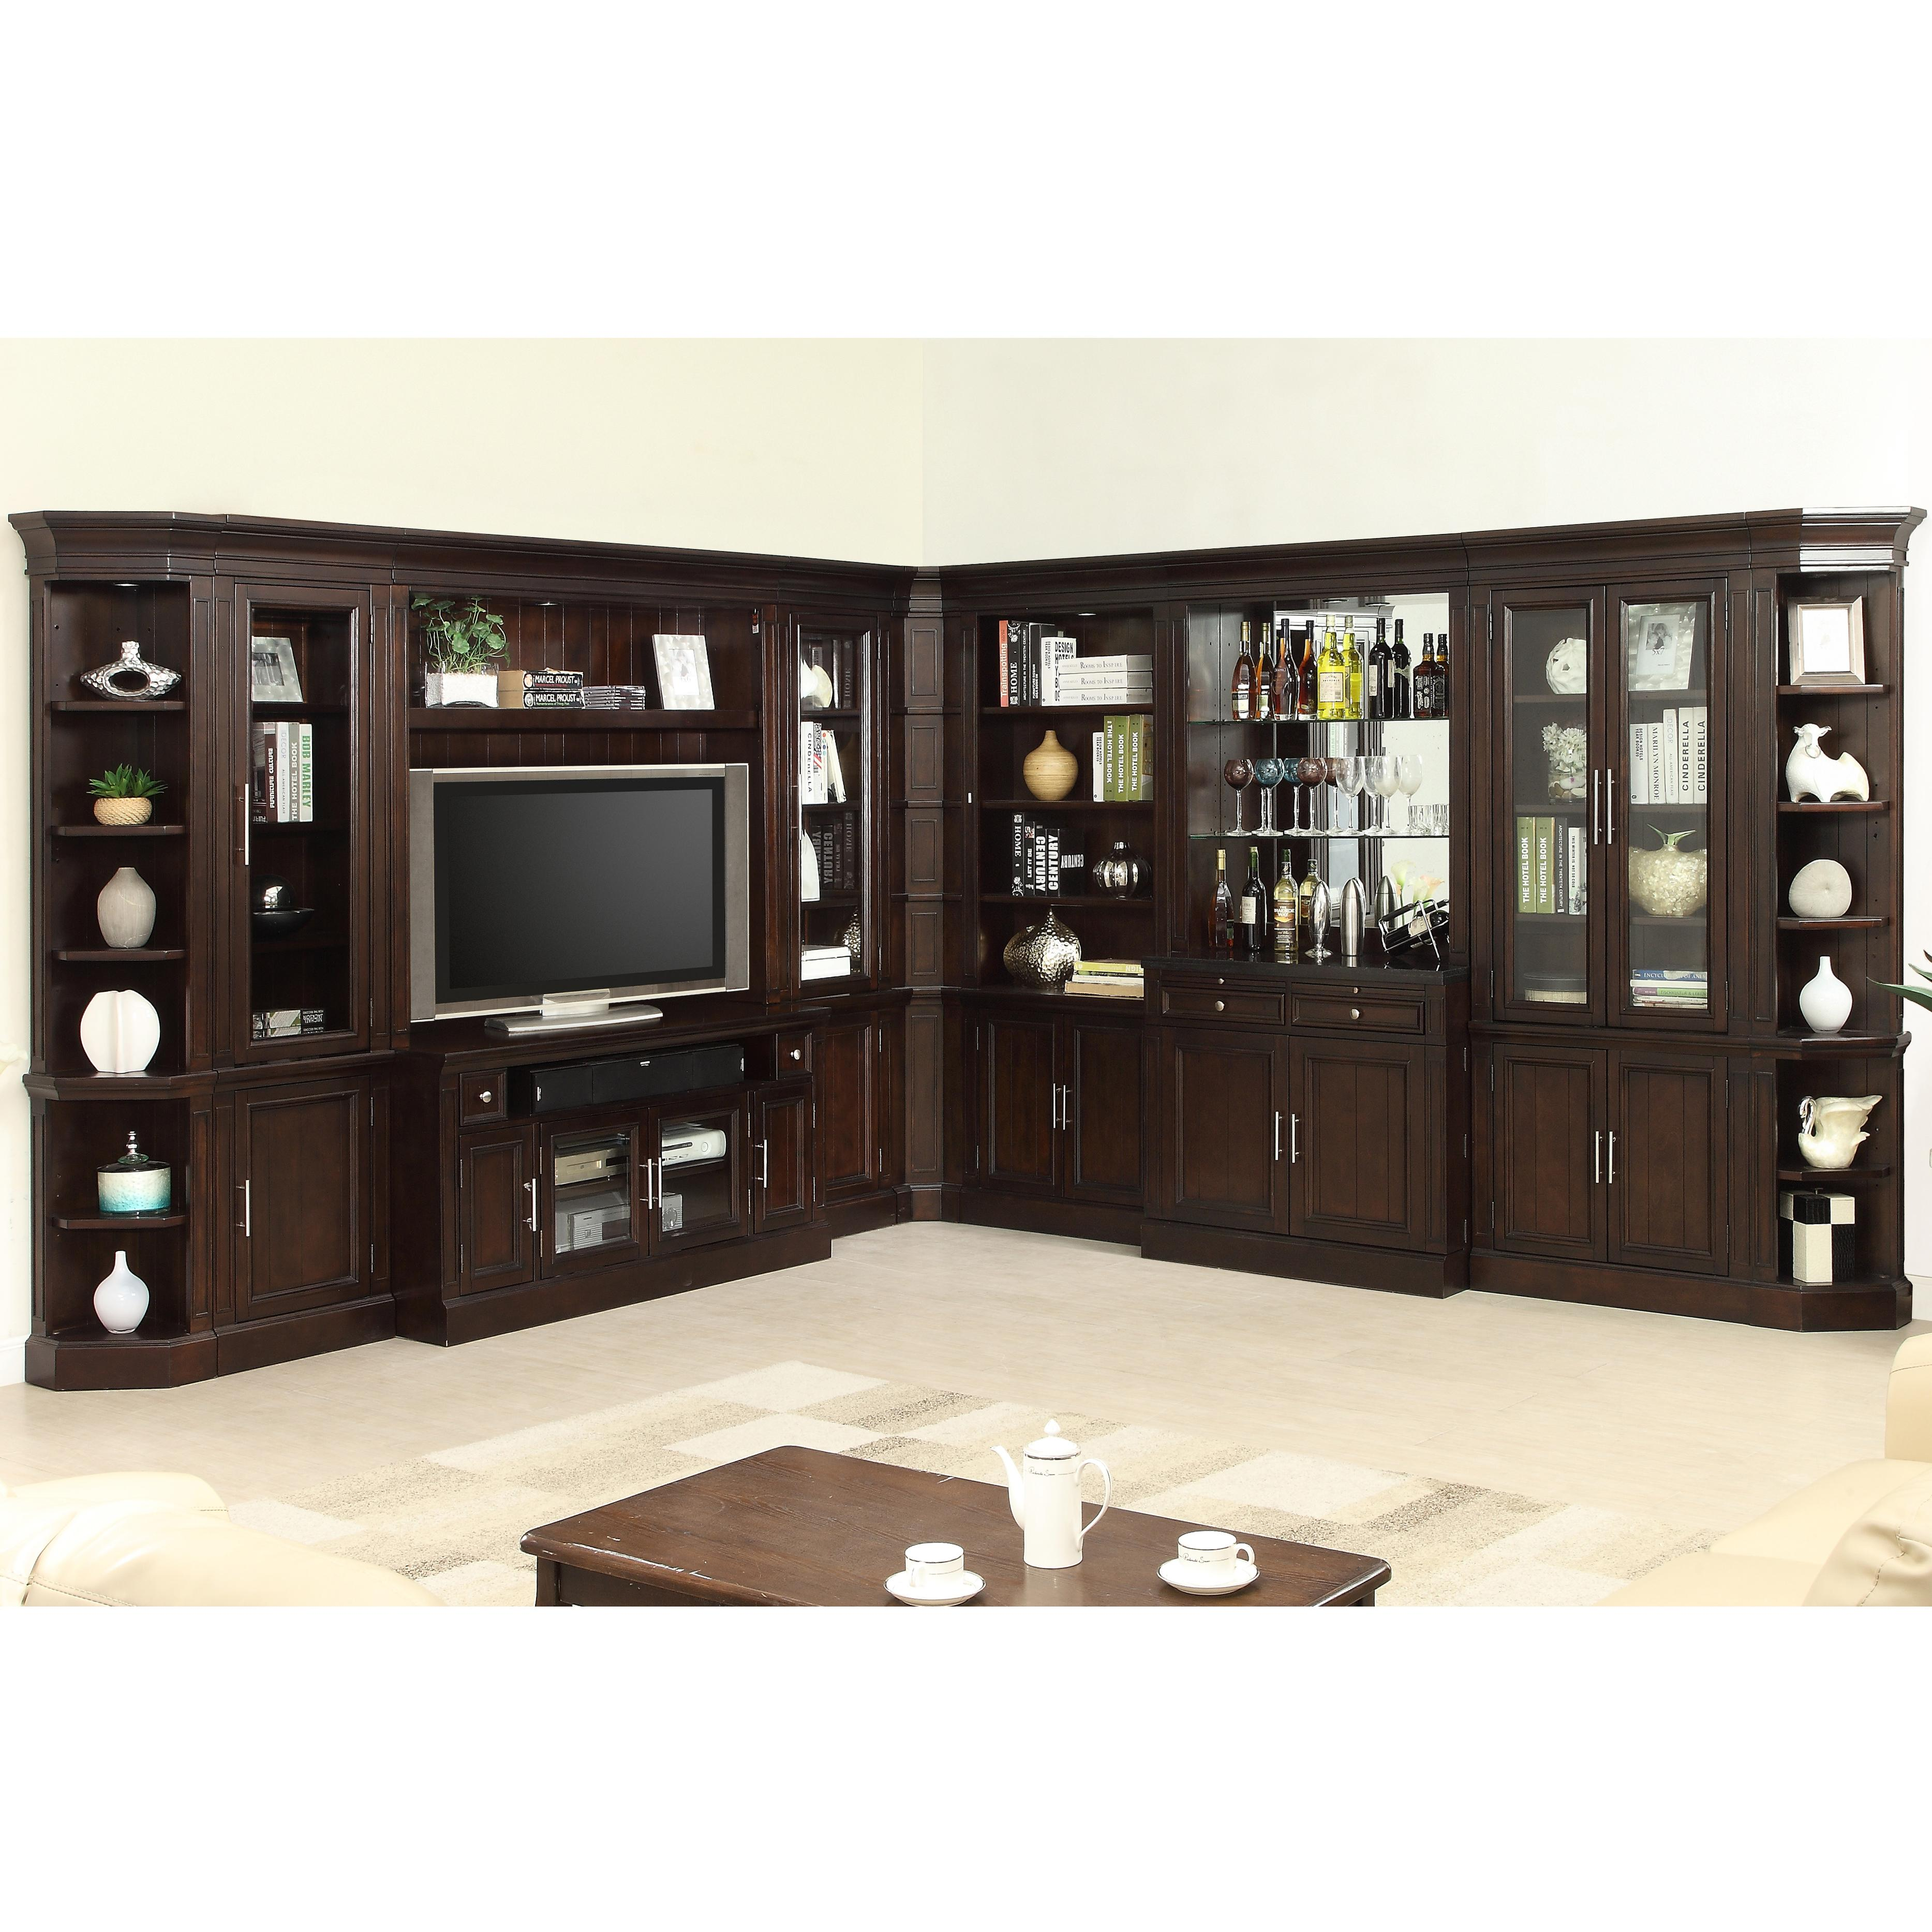 Parker house stanford wall unit with bar and tv console del sol furniture wall unit for Built in units for living room ireland